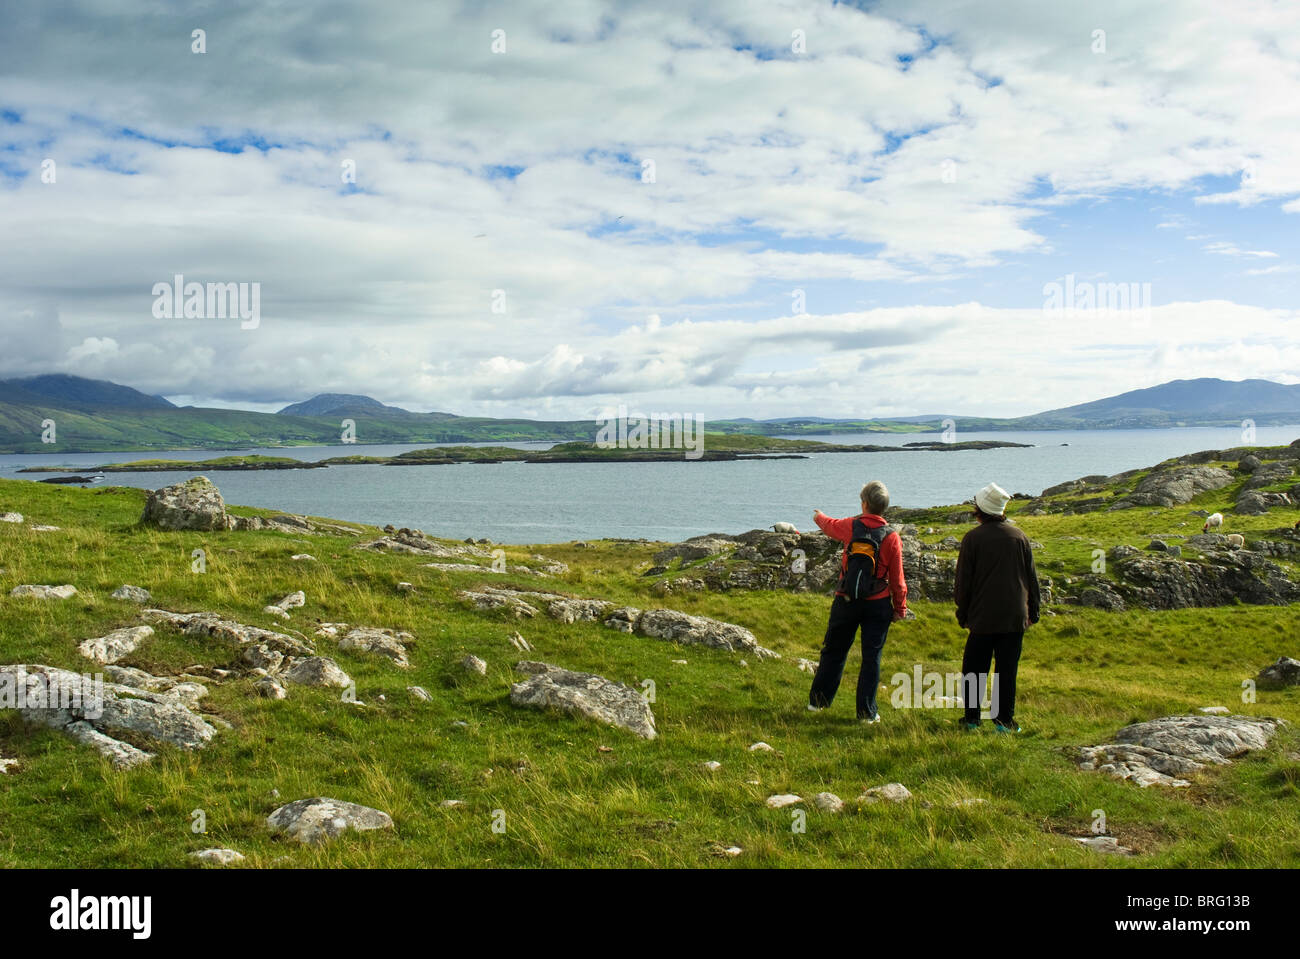 Two walkers viewing the landscape at Thallabawn strand, County Mayo, Ireland - Stock Image